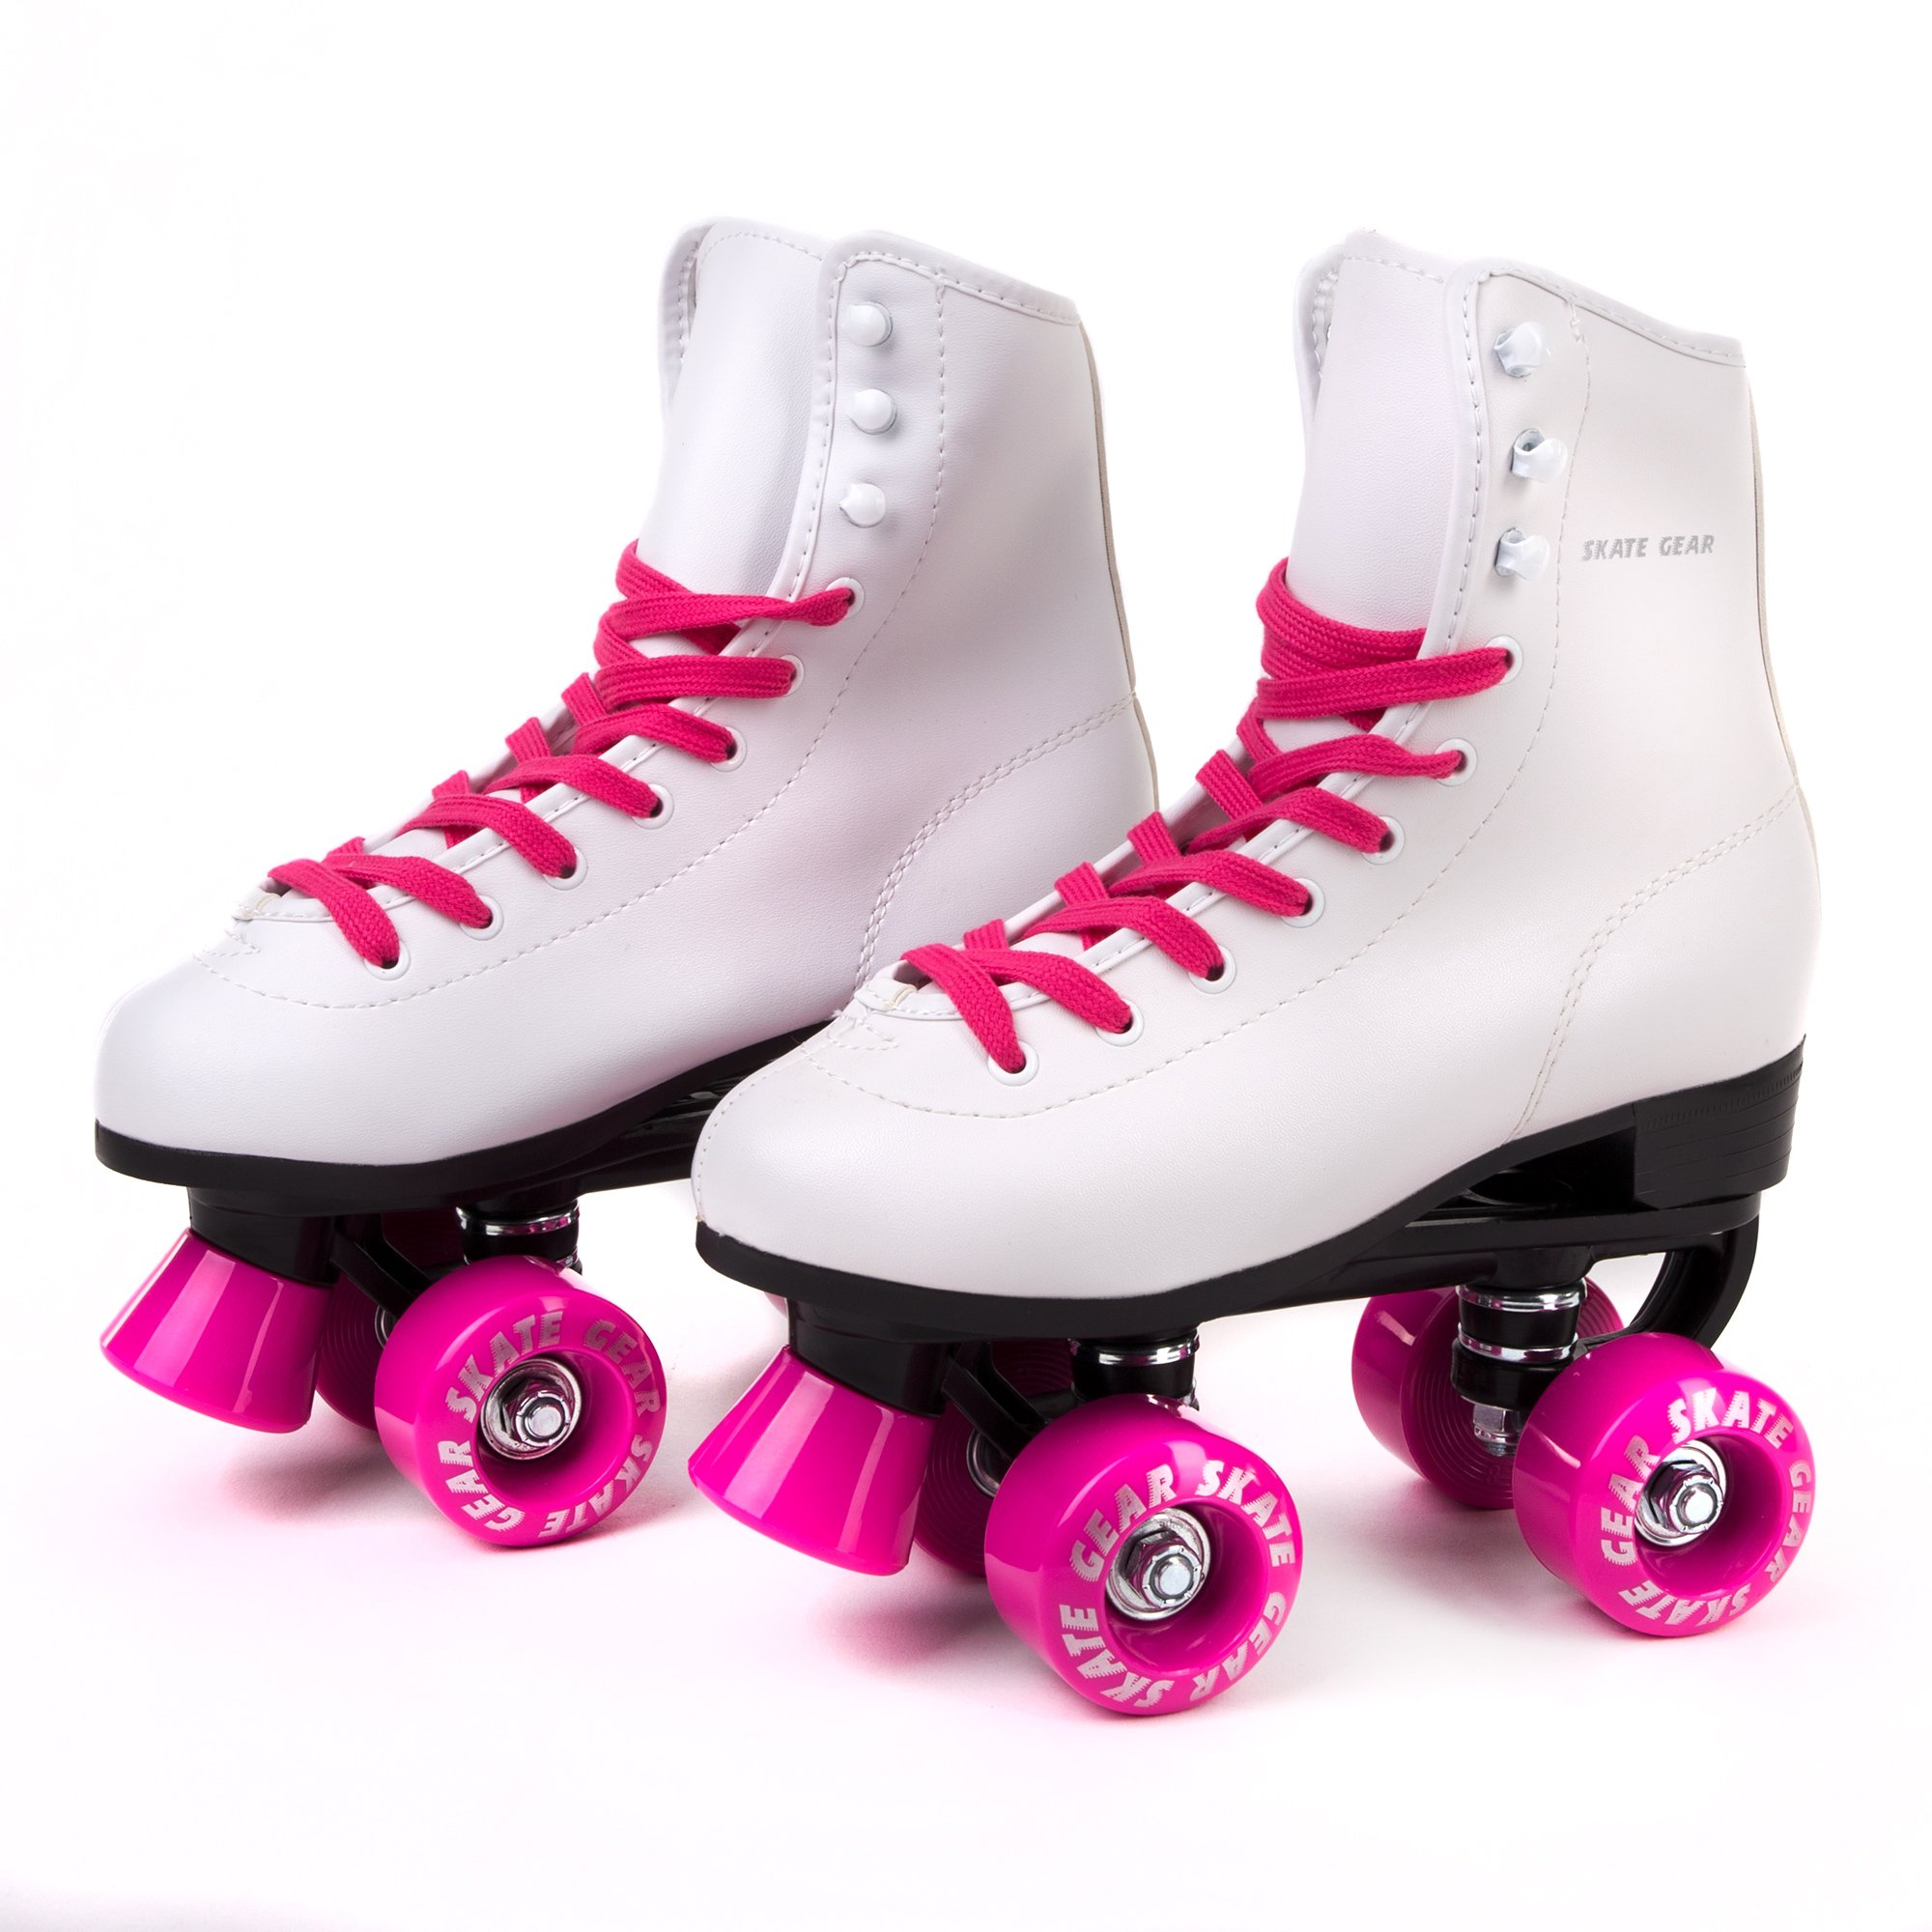 Cal 7 Skate Gear Soft Boot Pink Roller Skate, Retro Fashion High Top Design in Faux Leather for Indoor & Outdoor - Men's 10 / Women's 11